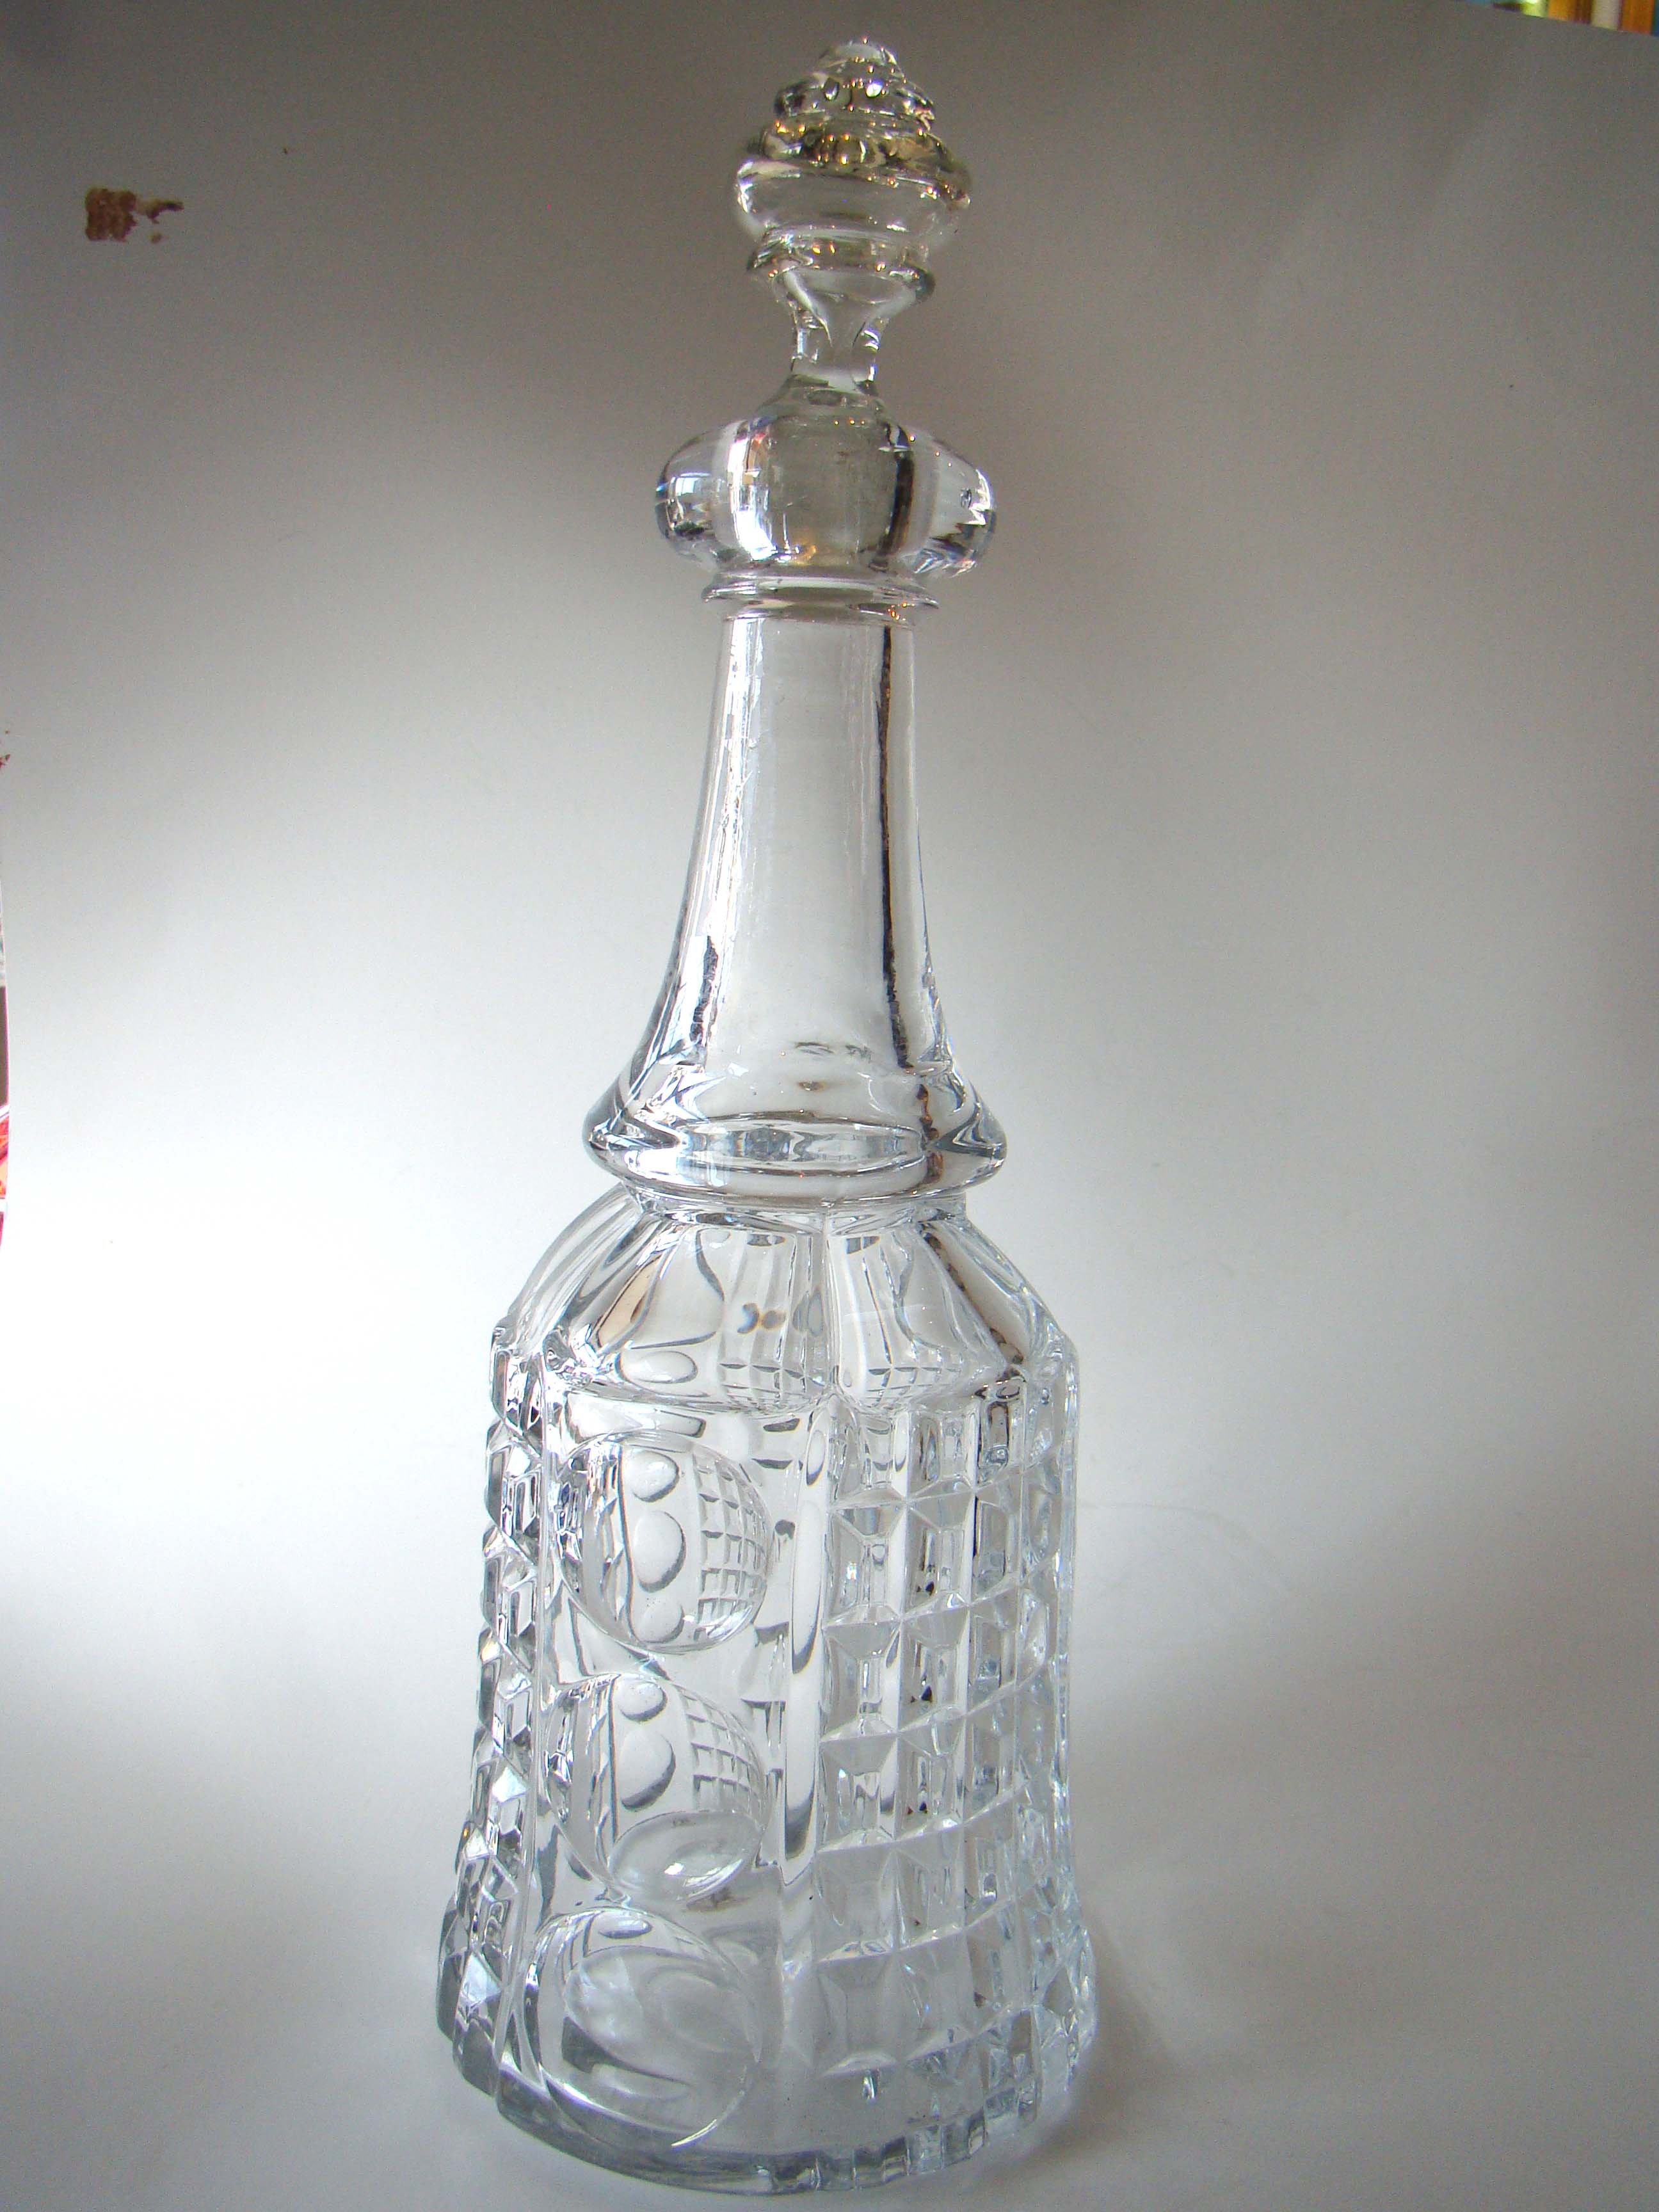 click to view larger image of A rare antique Sandwich glass